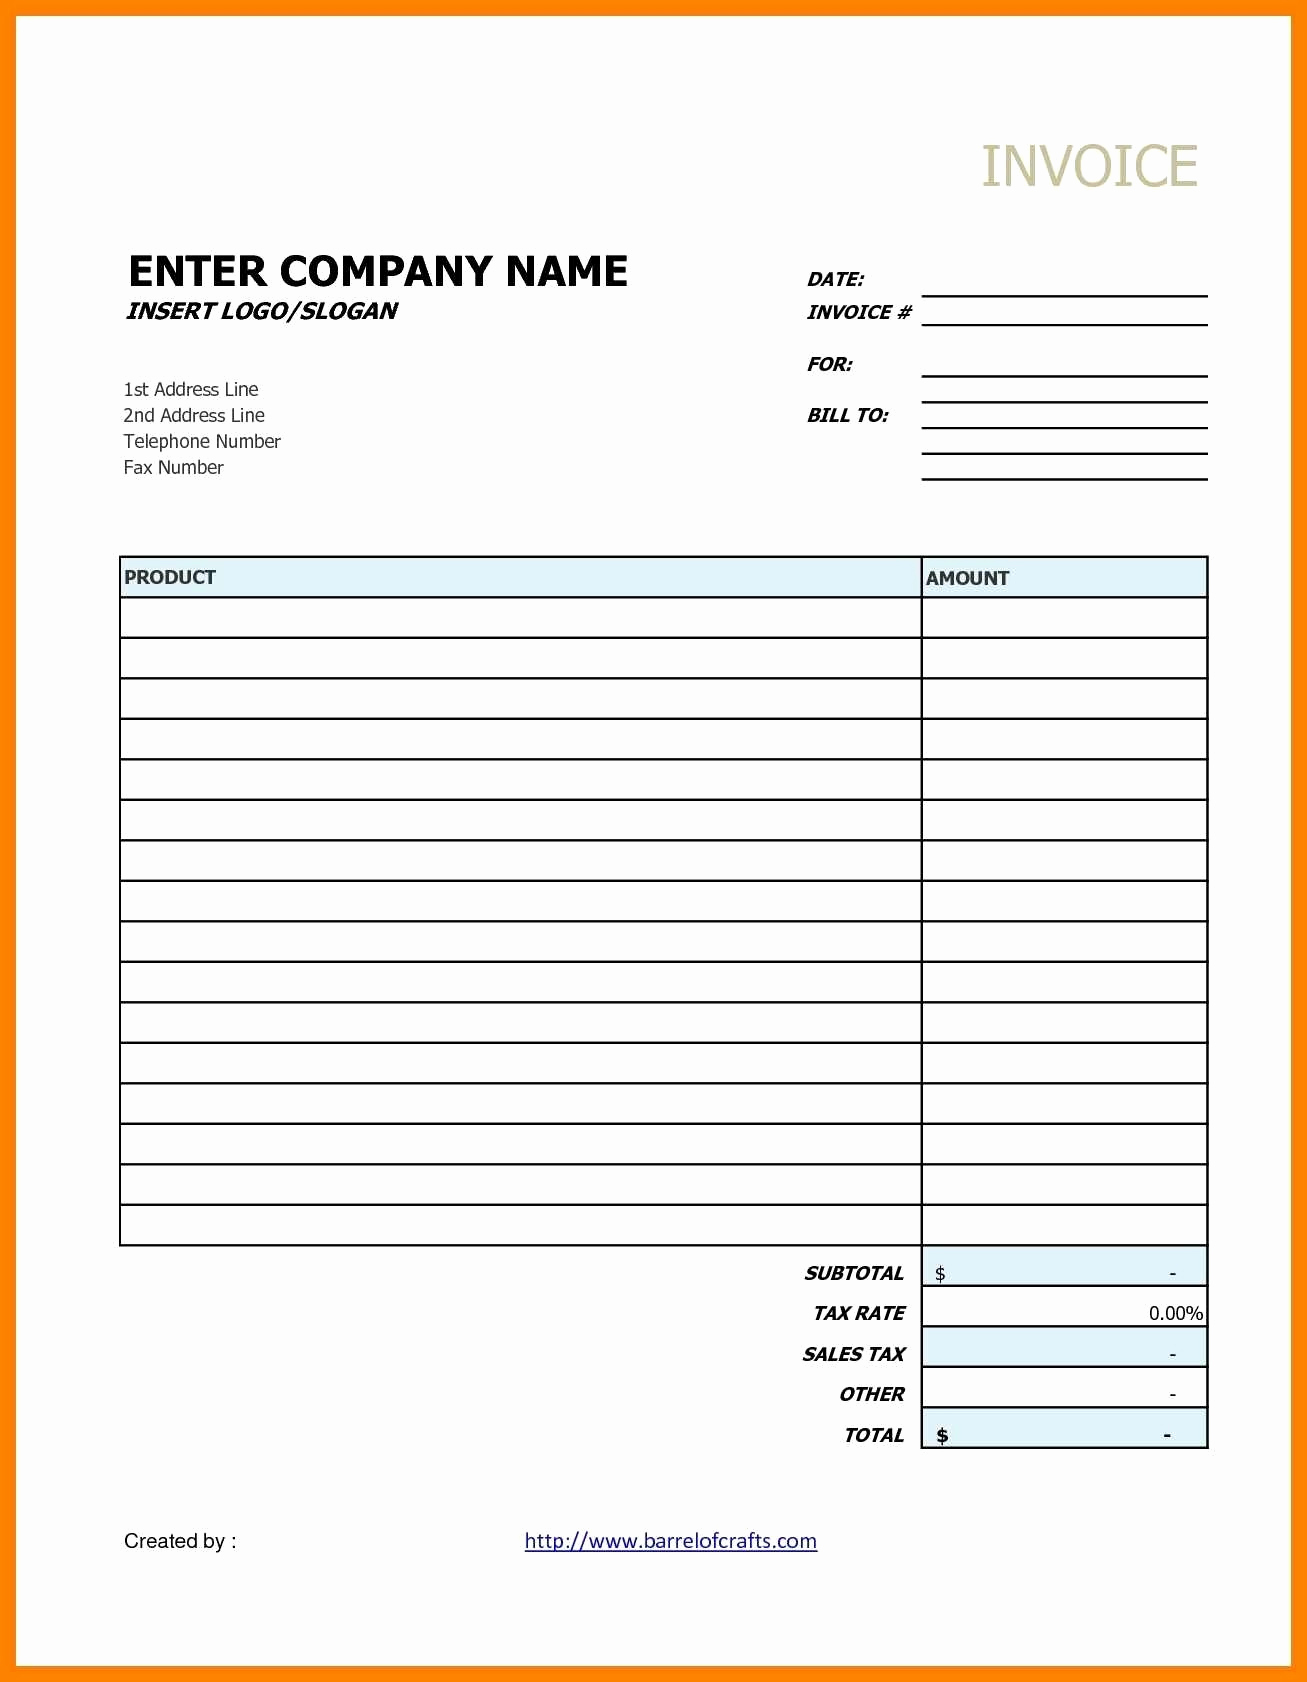 Blank Invoice Template Google Docs Awesome Invoice Template Google Docs Editable Free Download